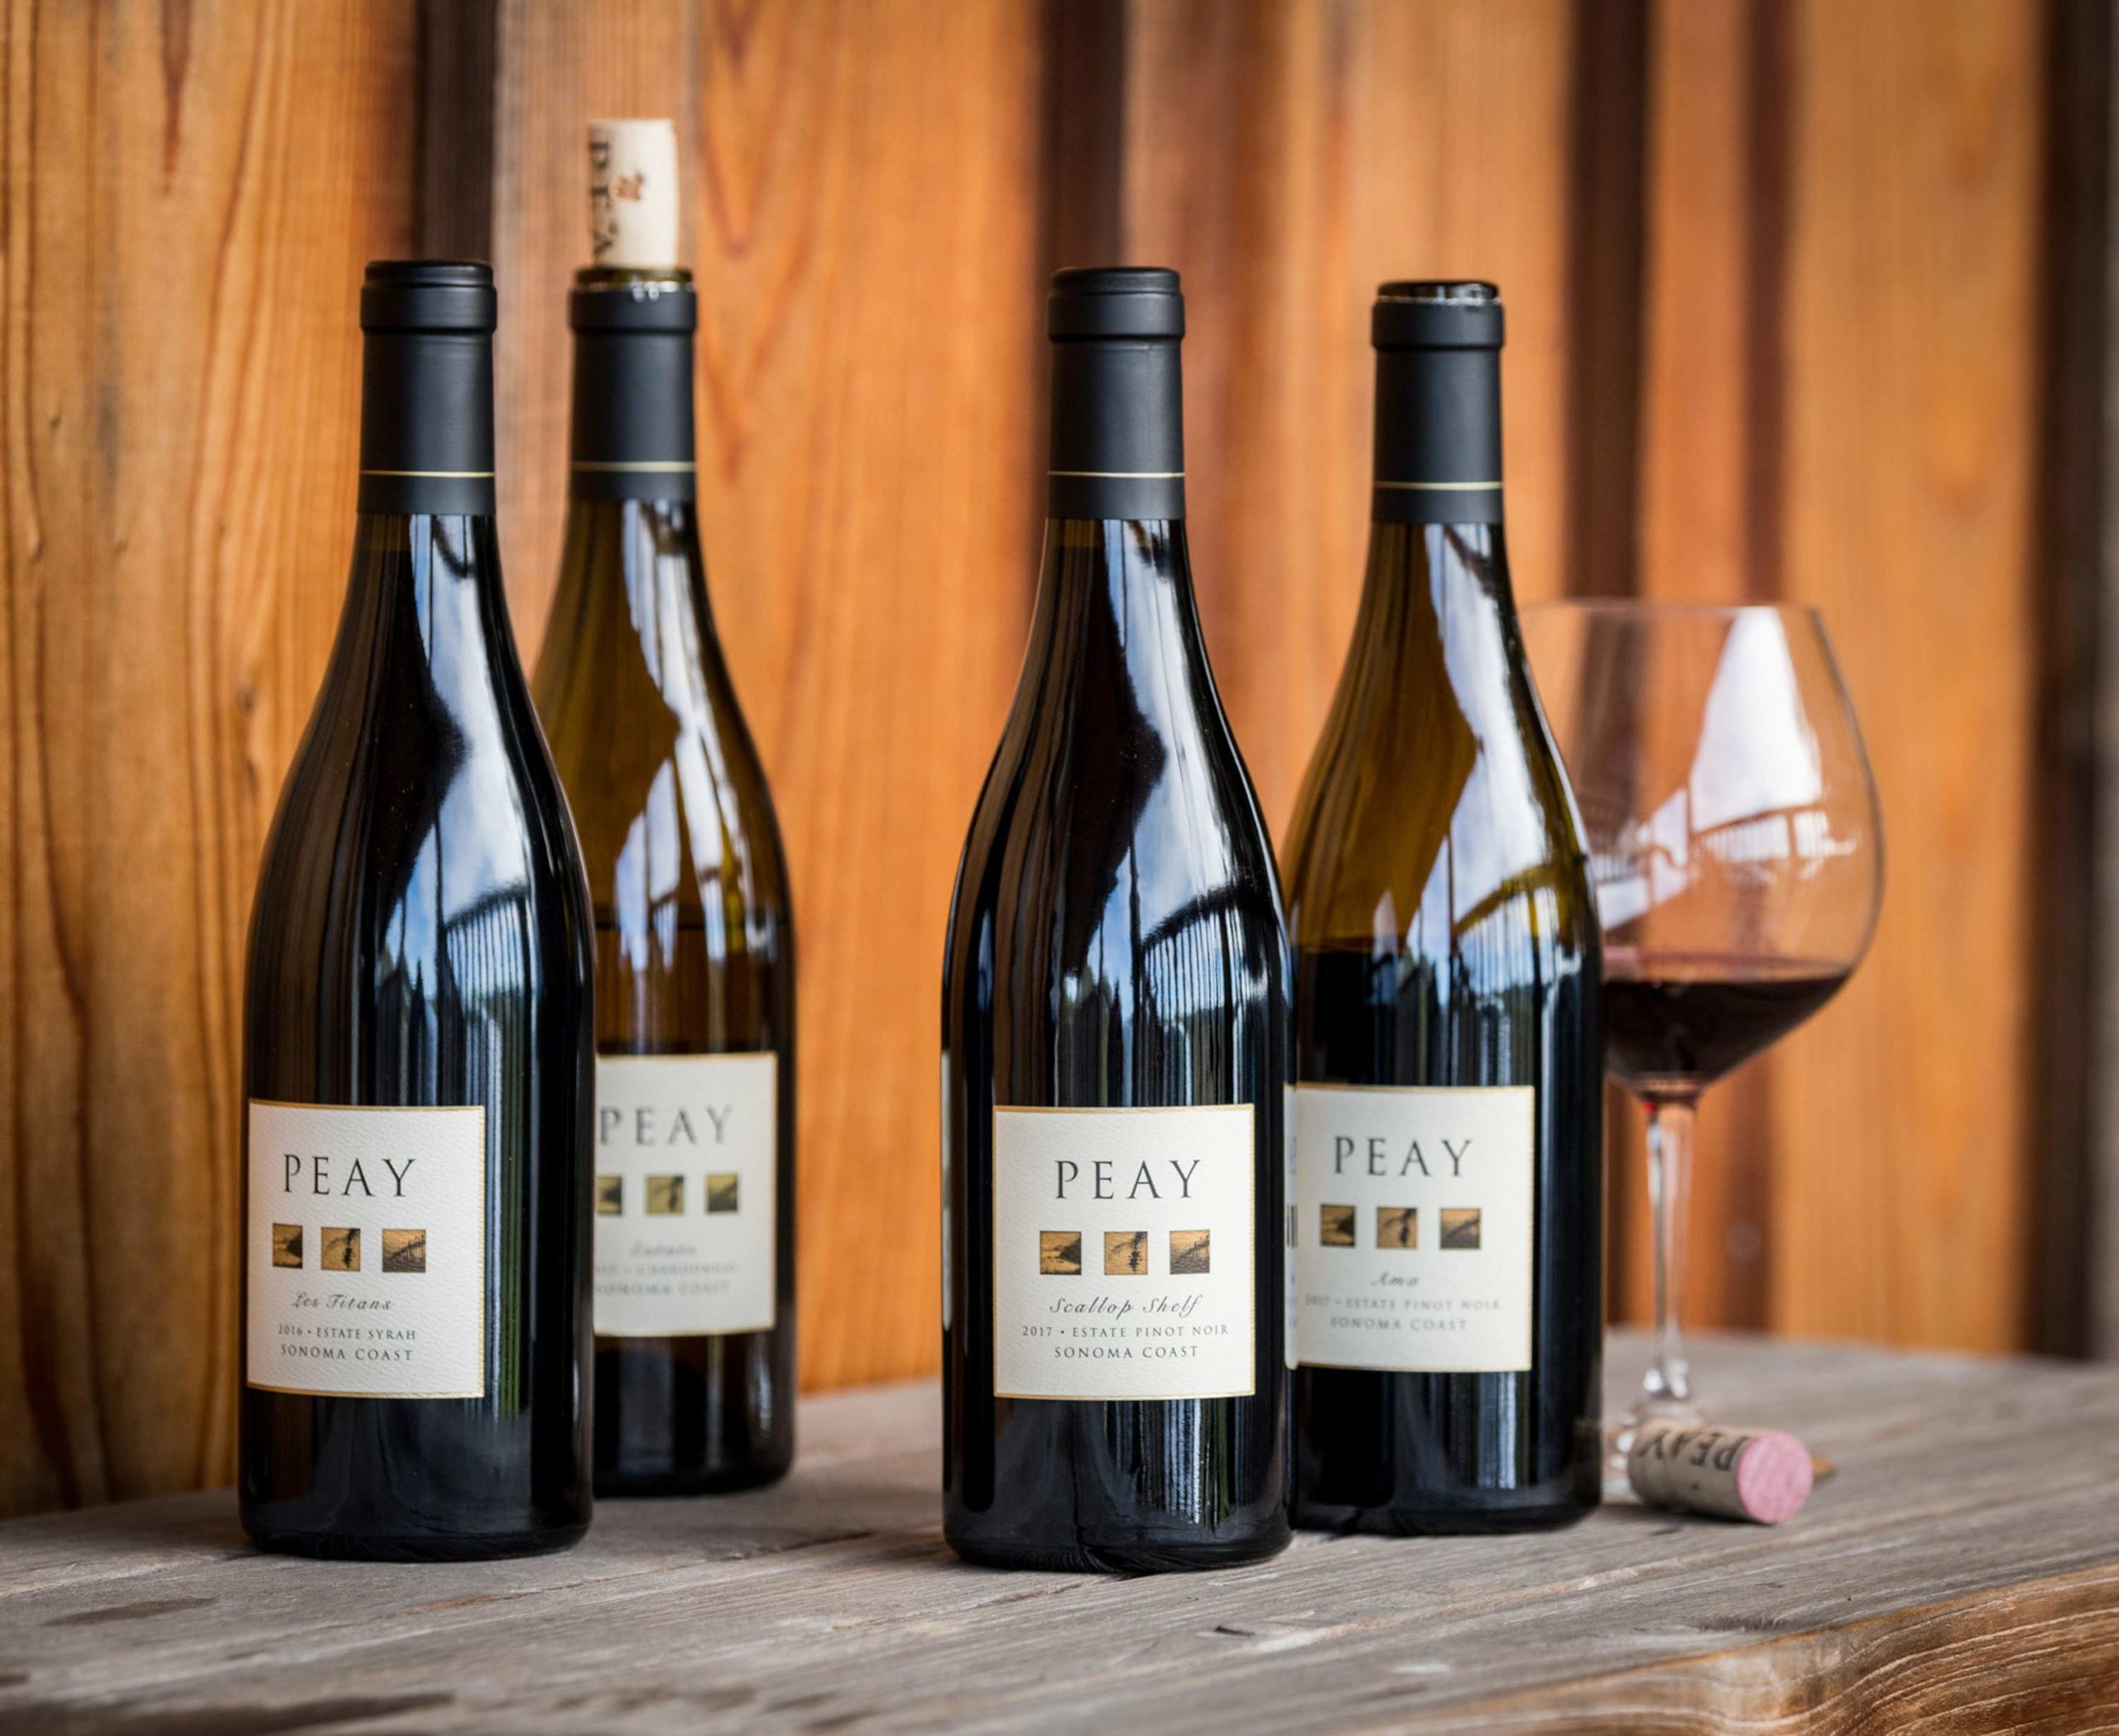 Featured image for Article: 2014 Peay Vineyards Pomarium Estate Pinot noir, Sonoma Coast